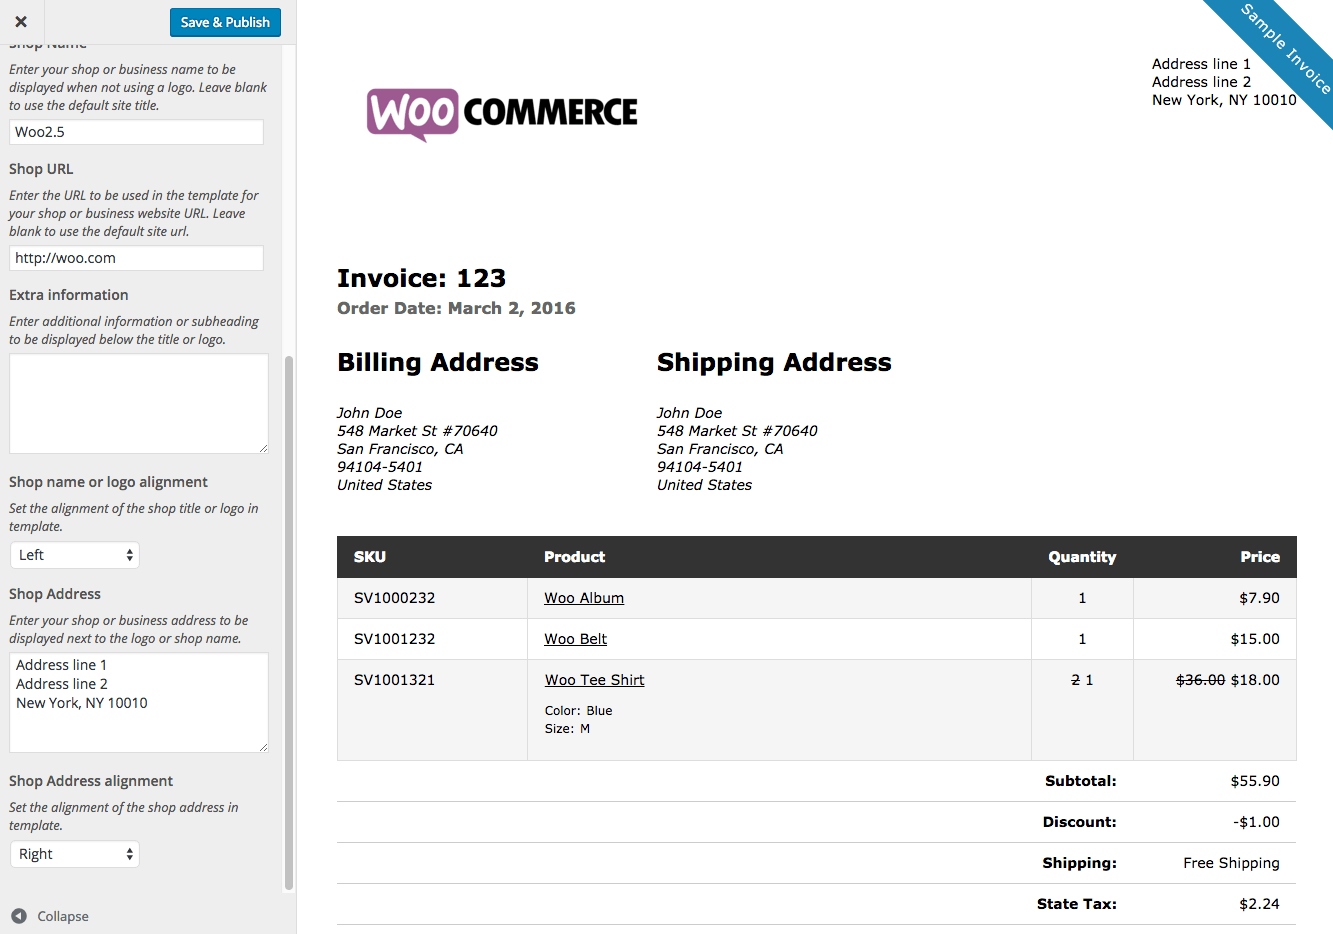 Modaoxus  Gorgeous Woocommerce Print Invoices Amp Packing Lists  Woocommerce Docs With Goodlooking Woocommerce Print Invoices  Packing Lists Customizer With Delectable Us Airways Receipts Also Filing Receipt In Addition How Long Should You Keep Receipts And Rent Receipt Example As Well As Child Care Receipt Template Additionally Receipt Organizer Scanner From Docswoocommercecom With Modaoxus  Goodlooking Woocommerce Print Invoices Amp Packing Lists  Woocommerce Docs With Delectable Woocommerce Print Invoices  Packing Lists Customizer And Gorgeous Us Airways Receipts Also Filing Receipt In Addition How Long Should You Keep Receipts From Docswoocommercecom